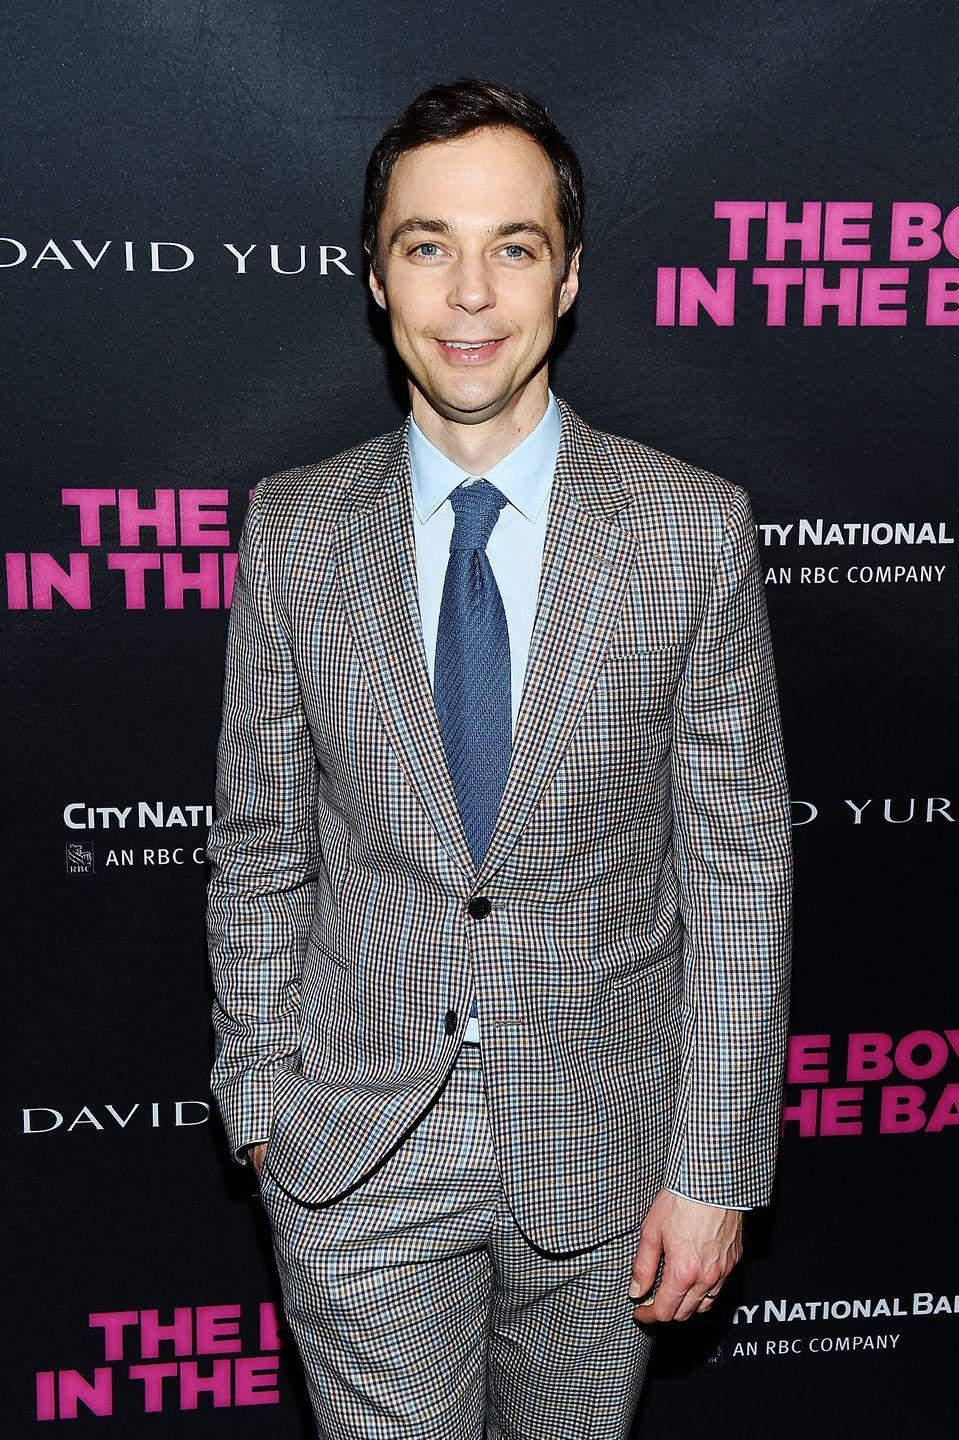 """<p>Jim Parsons of <em>T</em><em>he</em> <em>Big Bang Theory </em>was a member of the <a href=""""https://www.pikes.org/about-pike/prominent-pikes"""" rel=""""nofollow noopener"""" target=""""_blank"""" data-ylk=""""slk:Phi Kappa Alpha fraternity or &quot;Pike.&quot;"""" class=""""link rapid-noclick-resp"""">Phi Kappa Alpha fraternity or """"Pike.""""</a> The actor pledged the chapter at the University of Houston. </p>"""